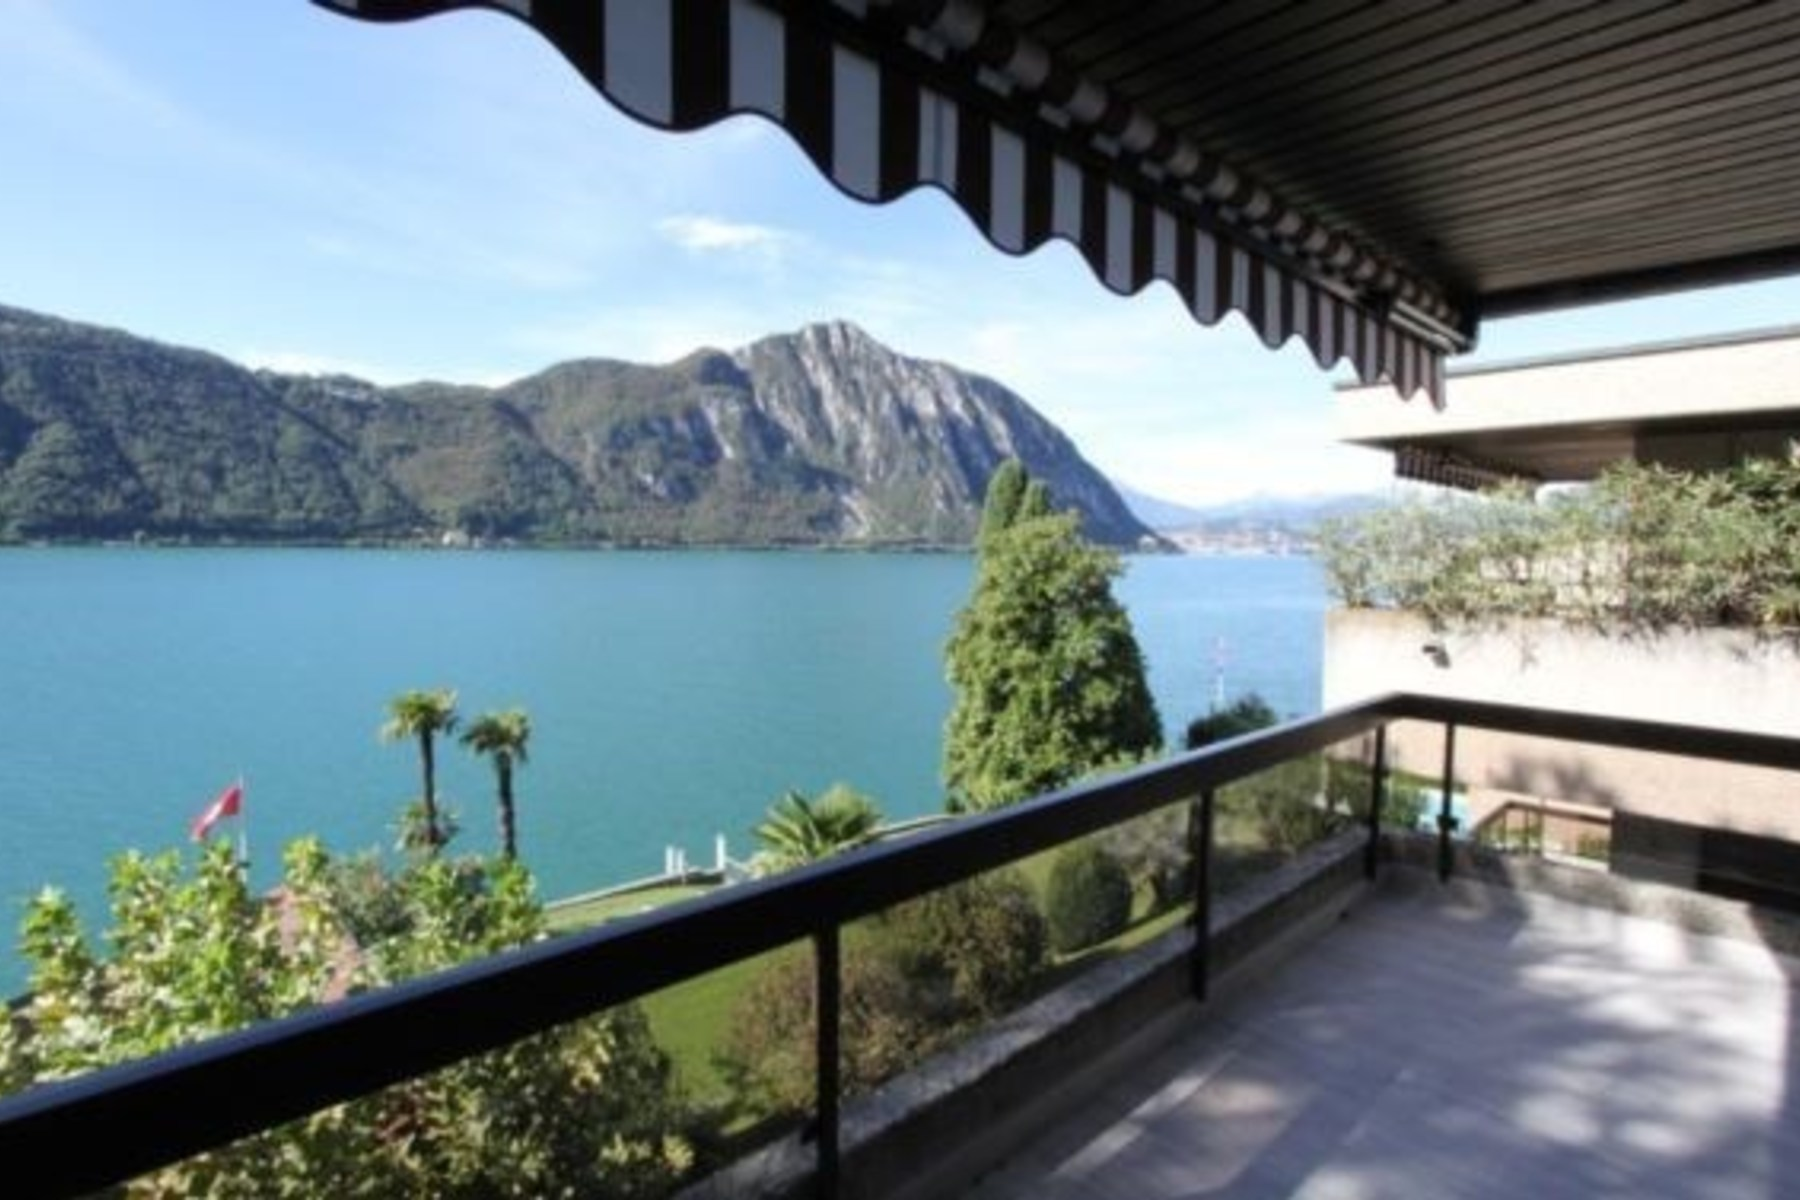 Apartment for Sale at Modern penthouse with lake view in Bissone Bissone, Ticino, 6816 Switzerland